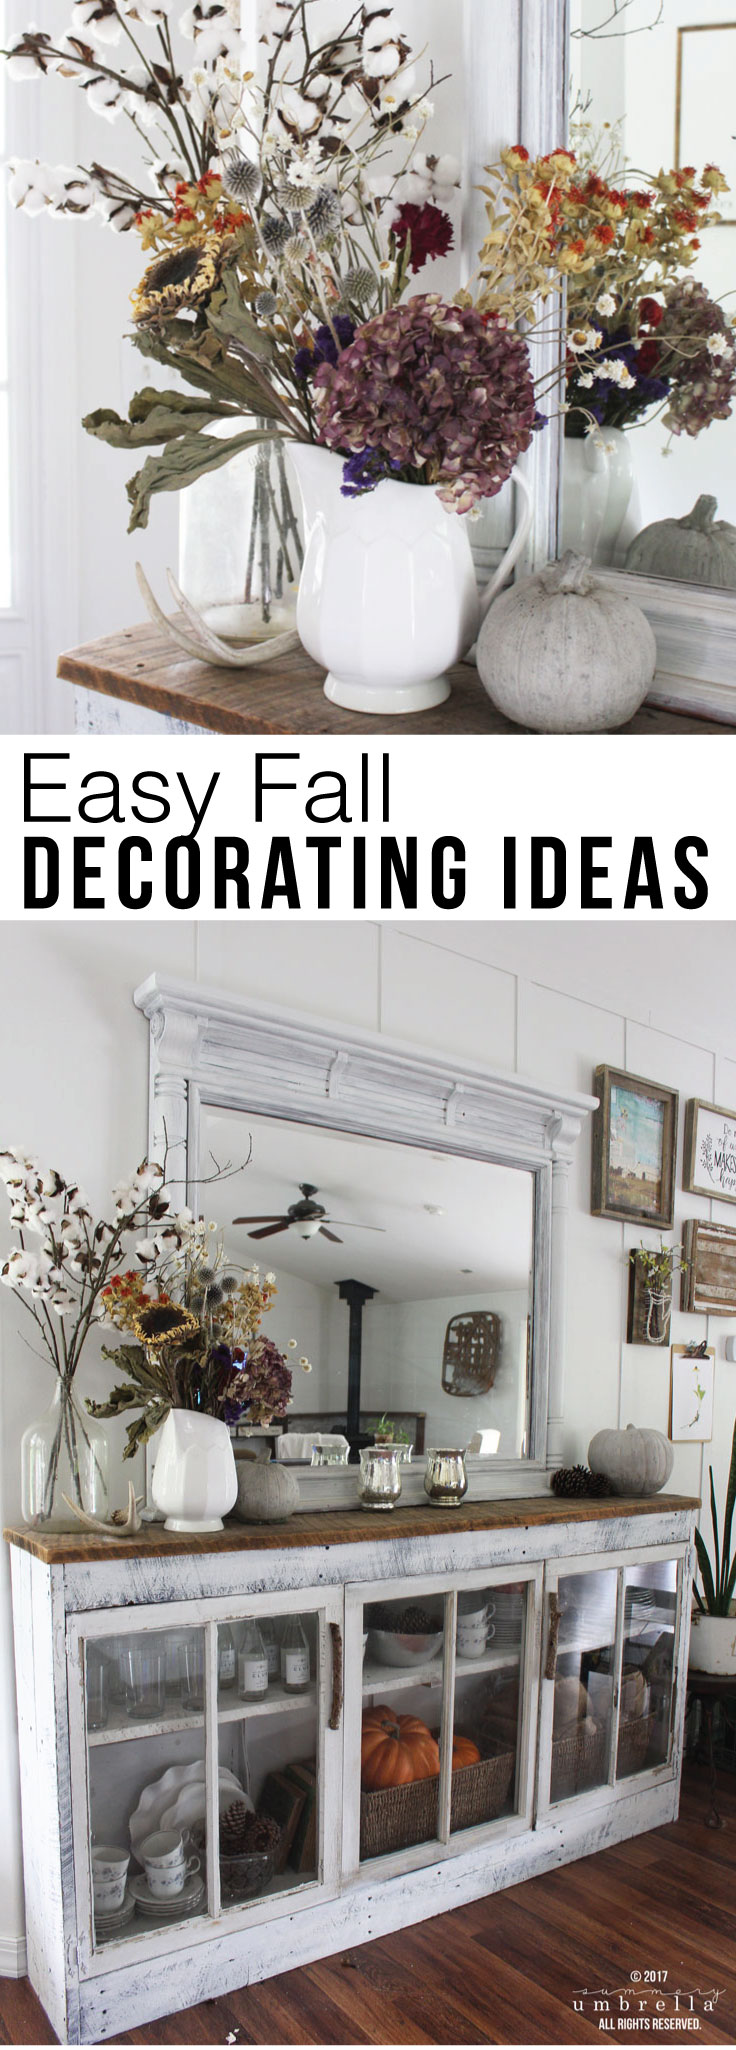 Have you been looking for Super Easy Fall Decorating Ideas that can be used on a variety of spaces? Look no further because this is the post for you!